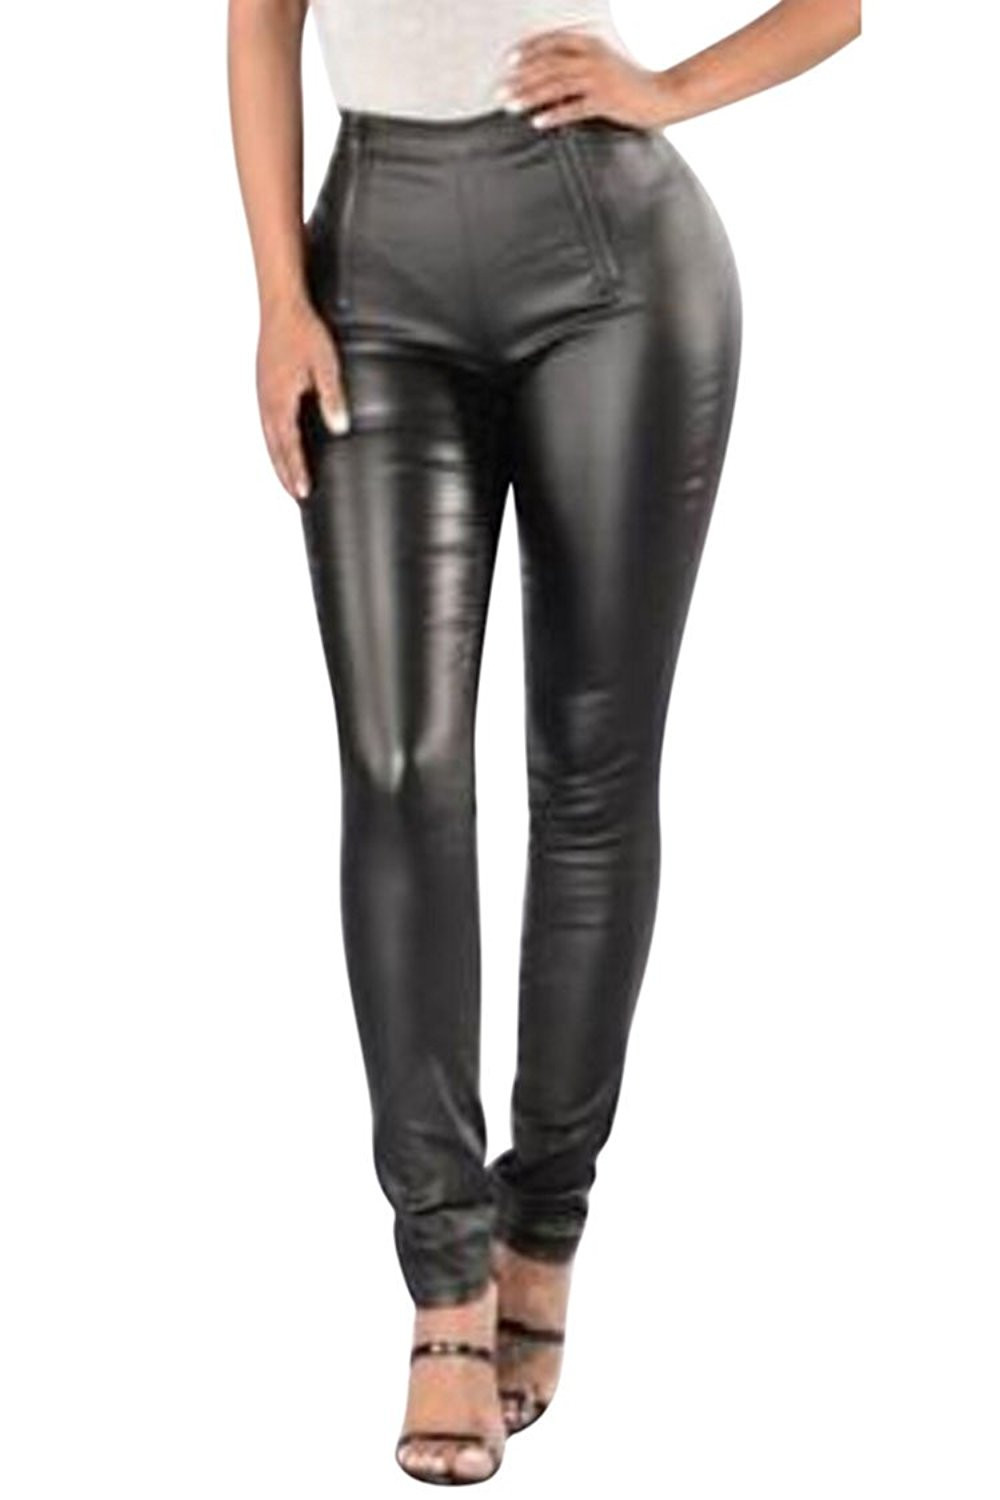 988db7e4781386 Get Quotations · Pink Queen Women's High Waist Sexy Pu Leather Pants Chic  Faux Leather Skinny Pants